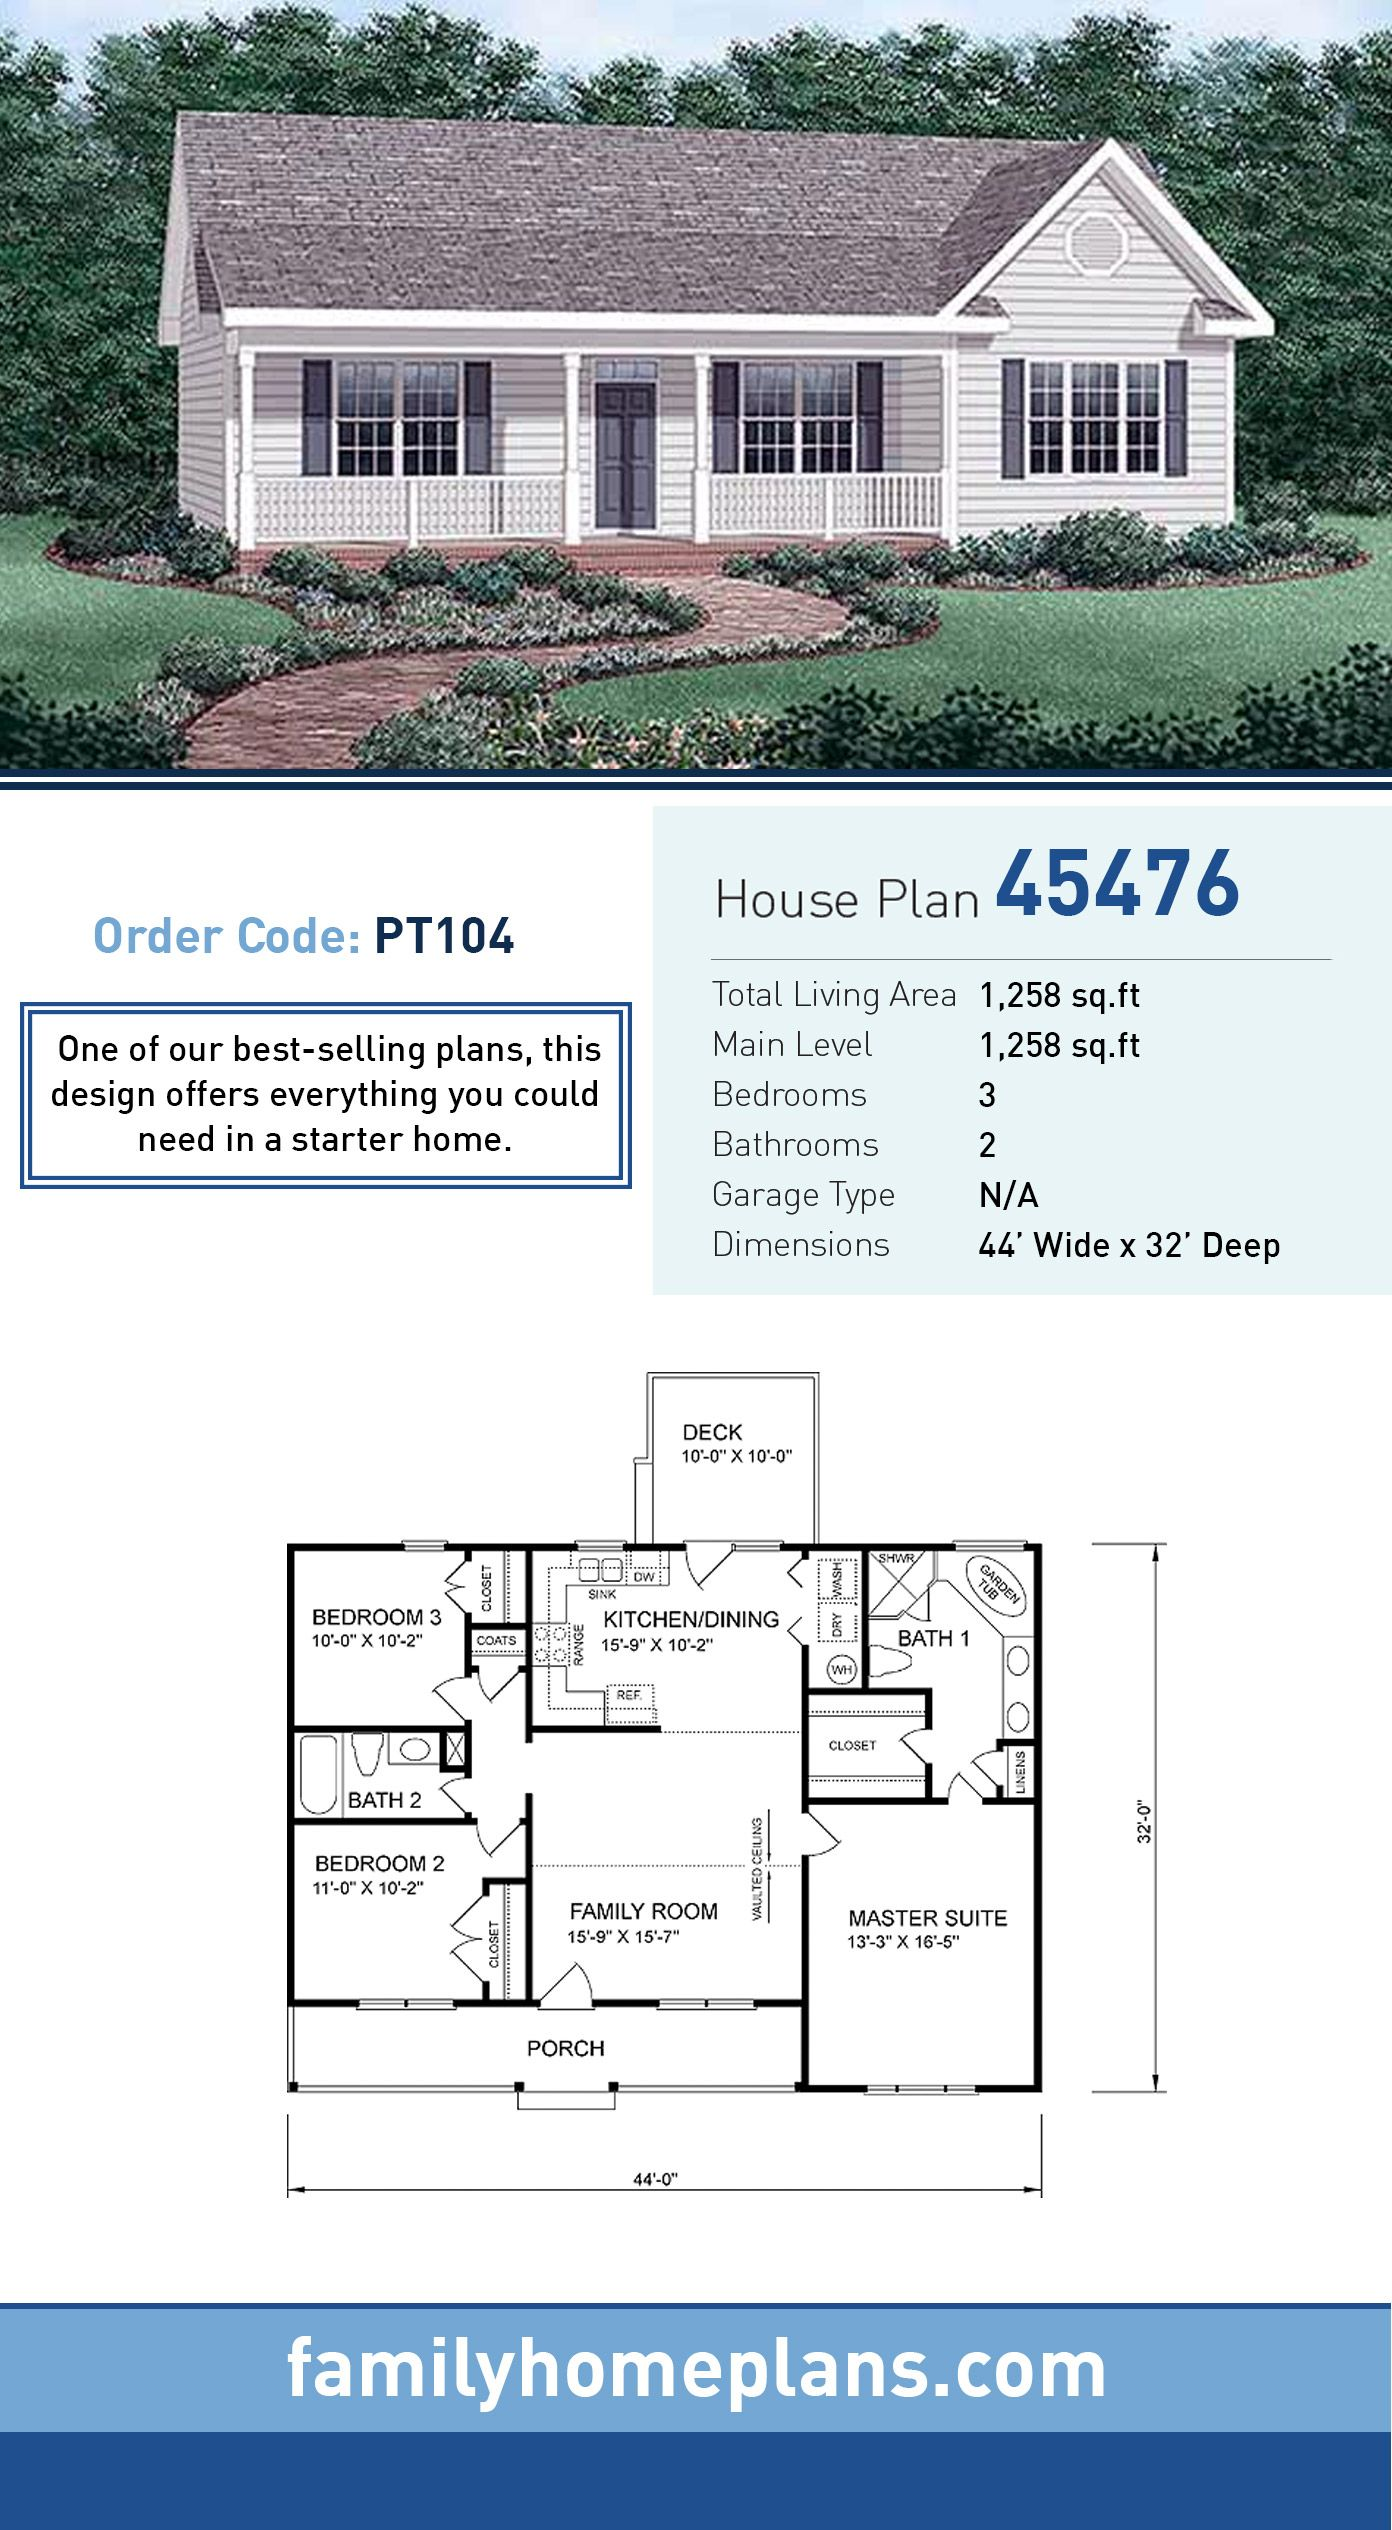 Traditional Style House Plan 45476 With 3 Bed 2 Bath Country Style House Plans House Blueprints Ranch House Plans